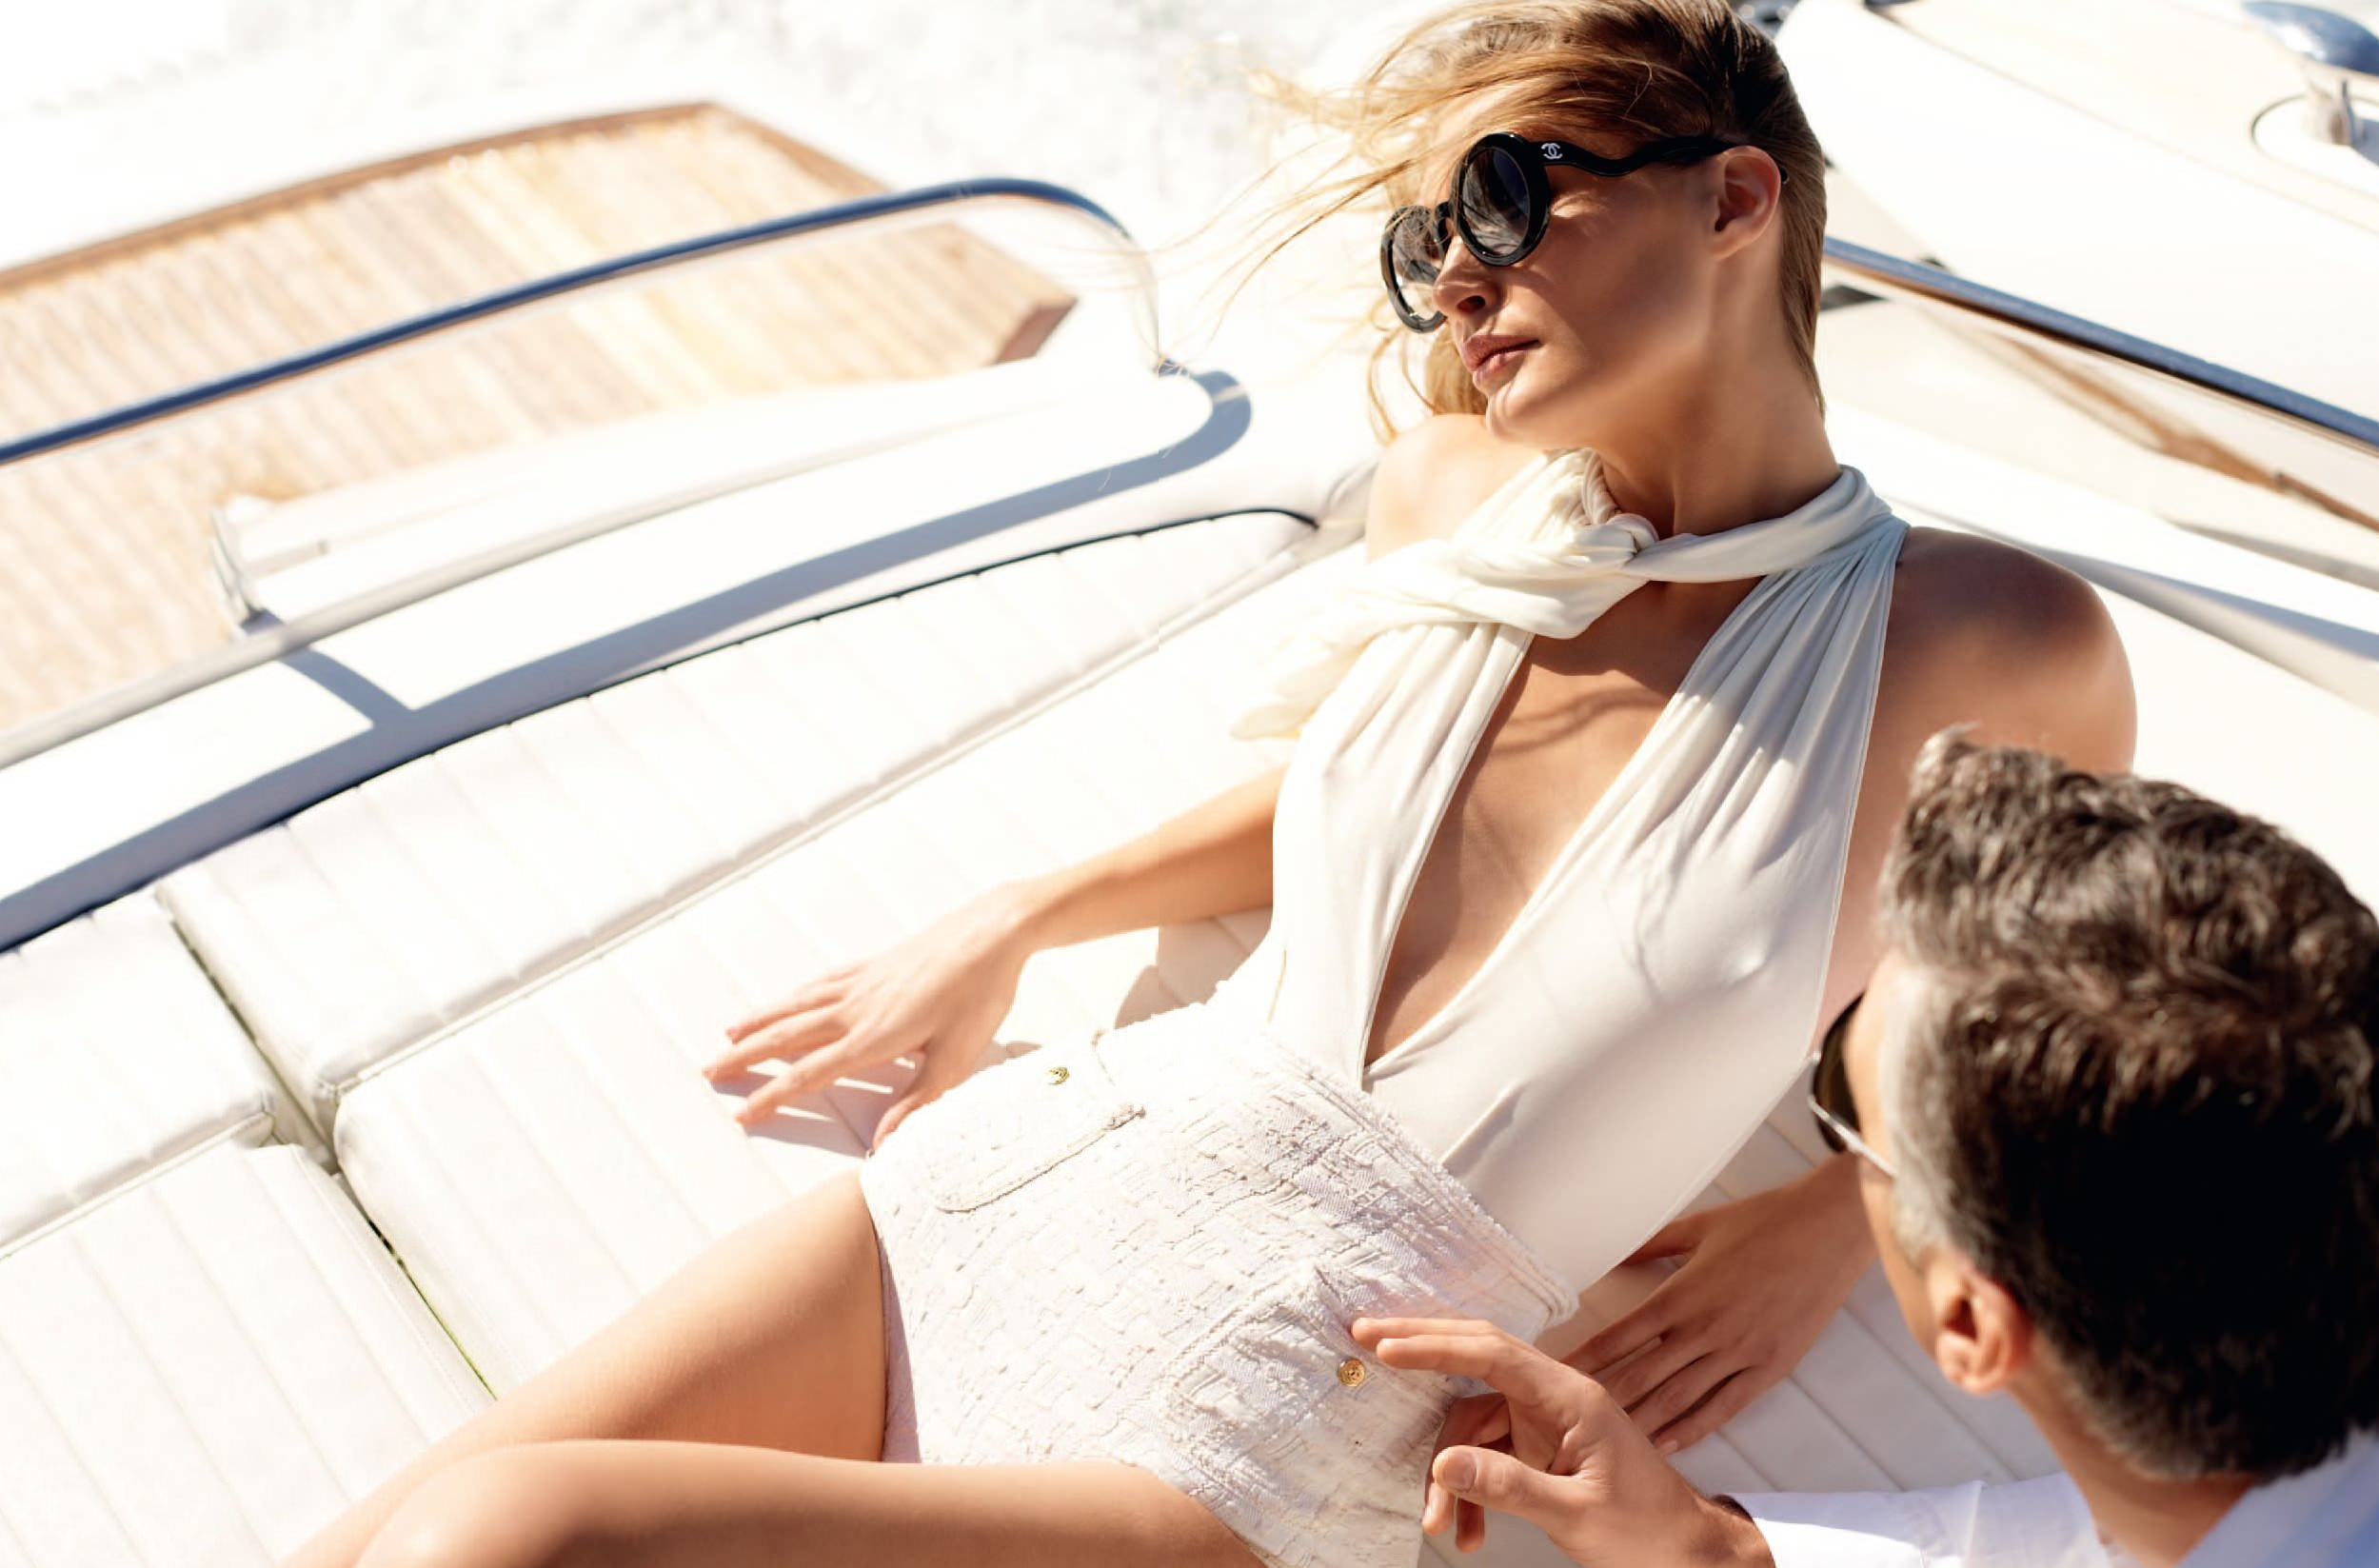 The Yacht Girls Of Summer